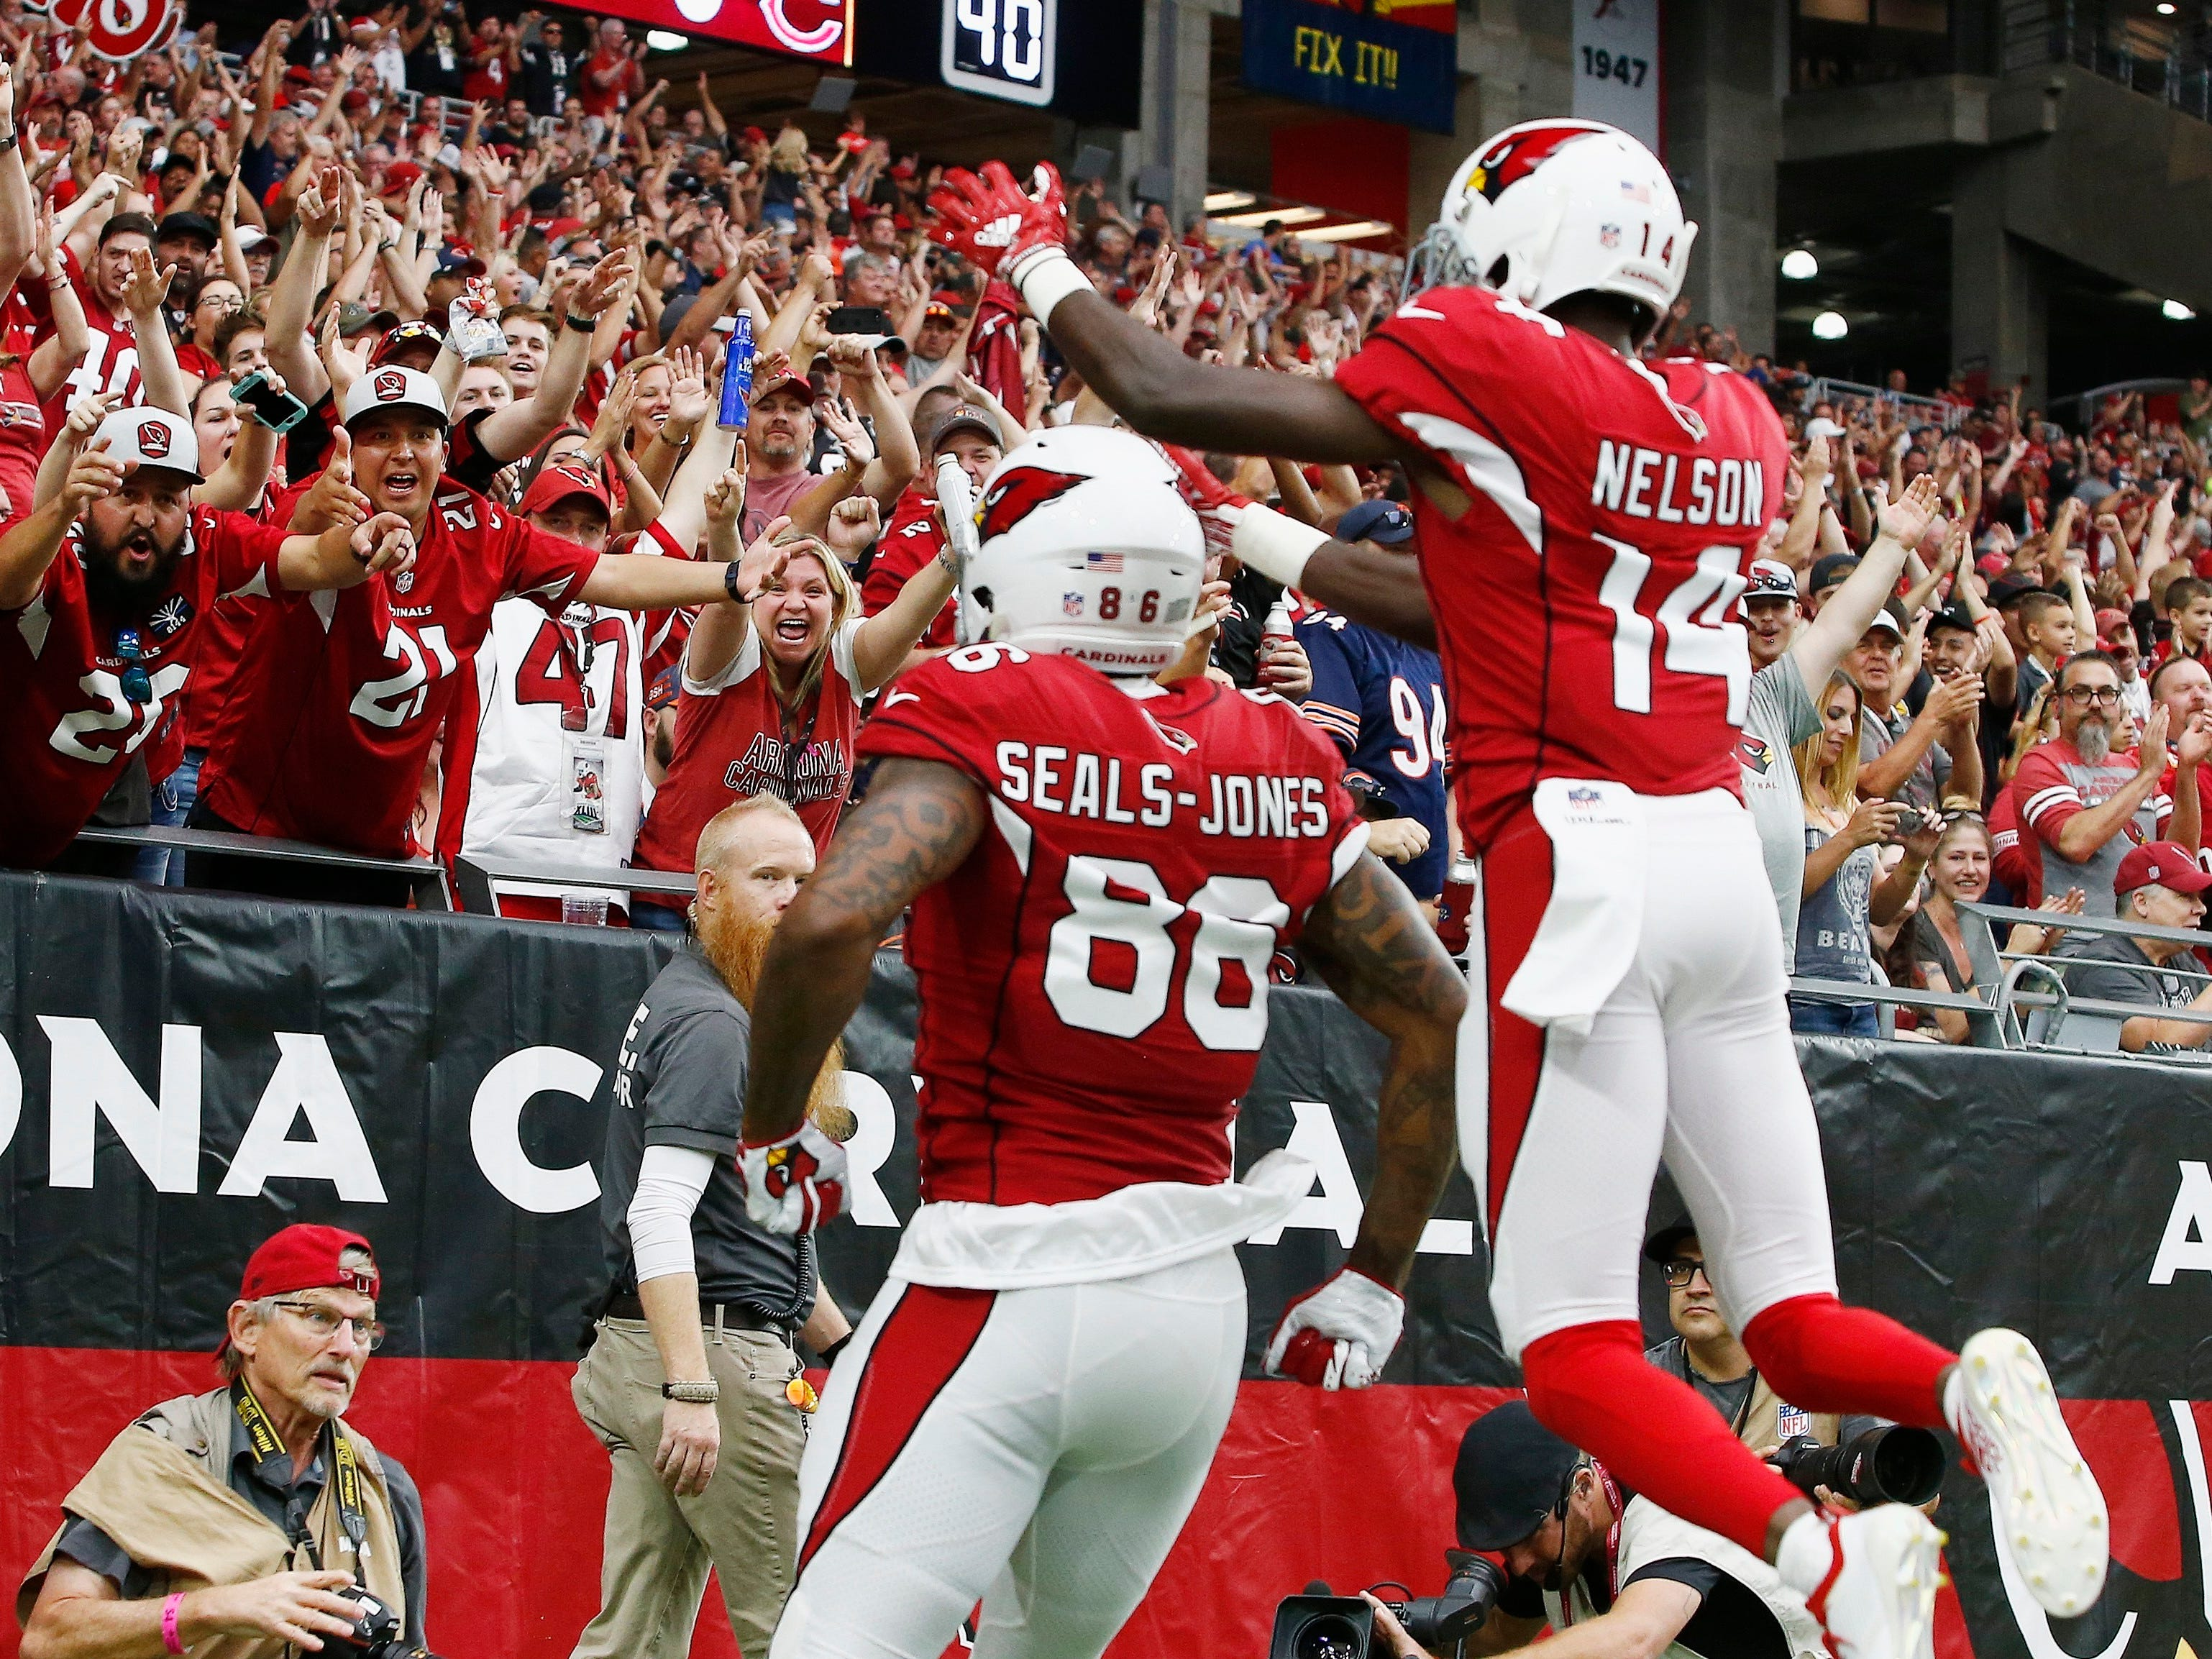 Arizona Cardinals tight end Ricky Seals-Jones (86) celebrates his touchdown against the Chicago Bears with J.J. Nelson (14) and fans during the first half of an NFL football game, Sunday, Sept. 23, 2018, in Glendale, Ariz. (AP Photo/Ralph Freso)